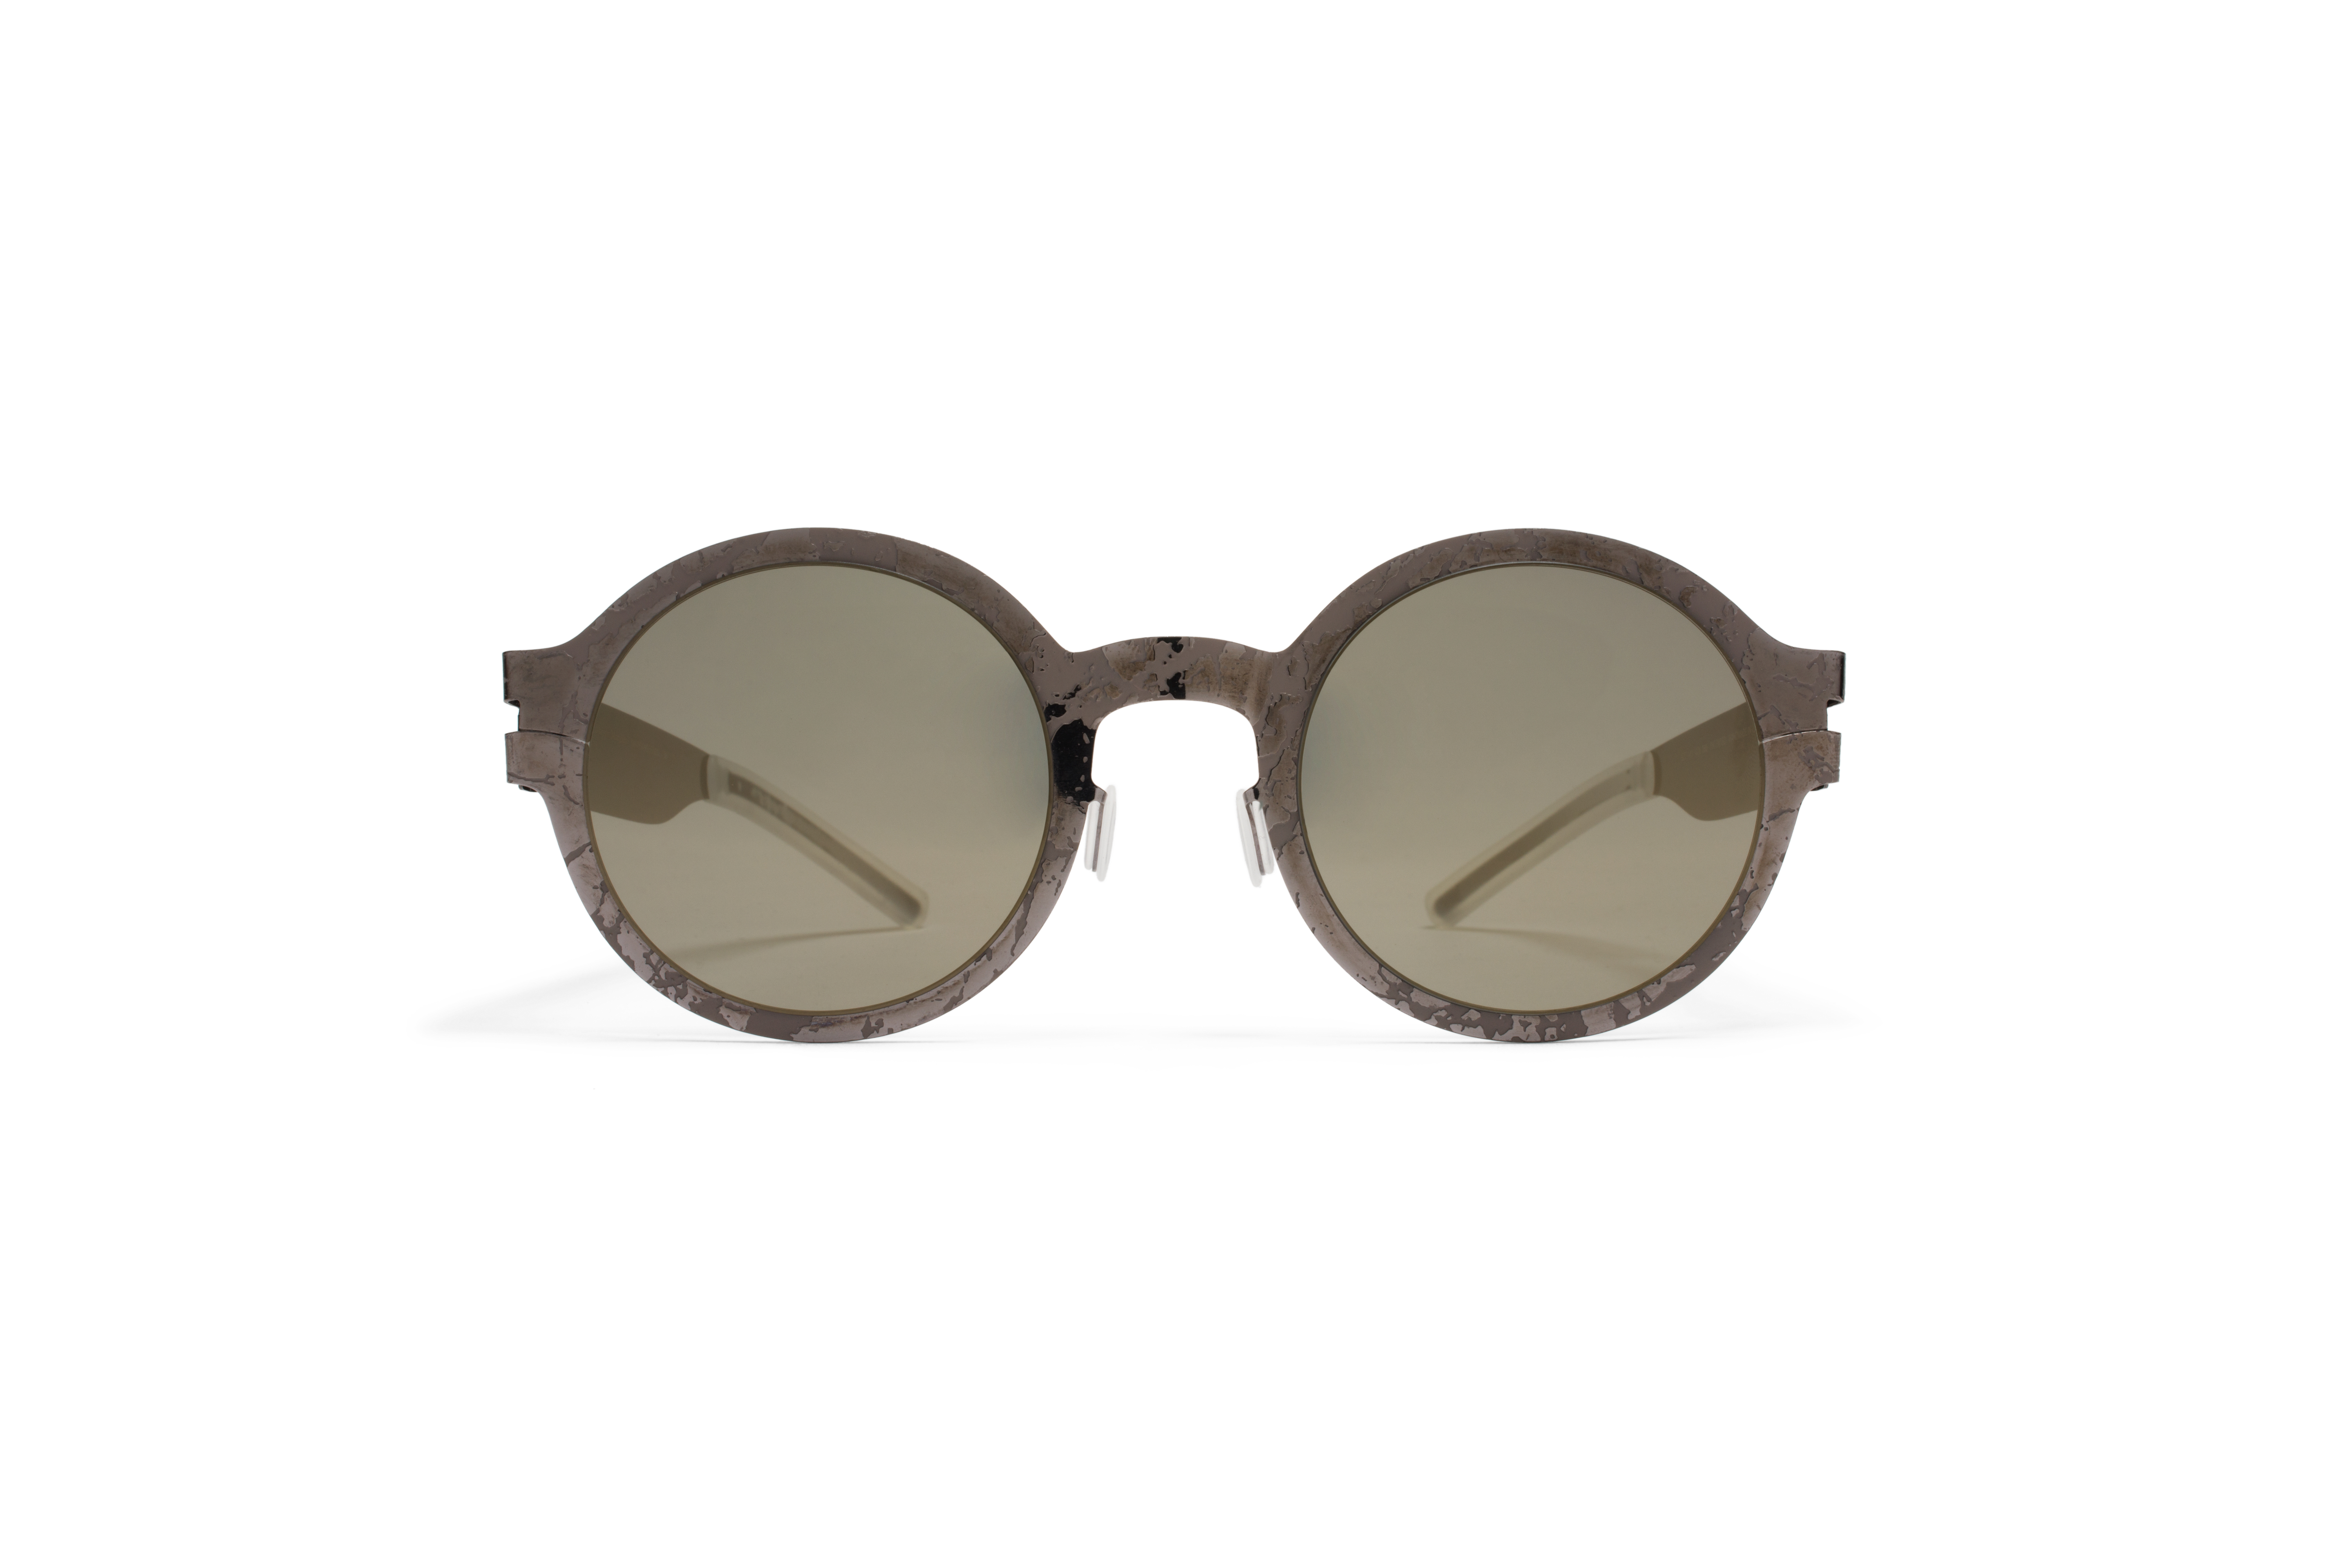 MYKITA Mm Sun Mmtransfer003 Graphite Molegrey St58a453ba74406